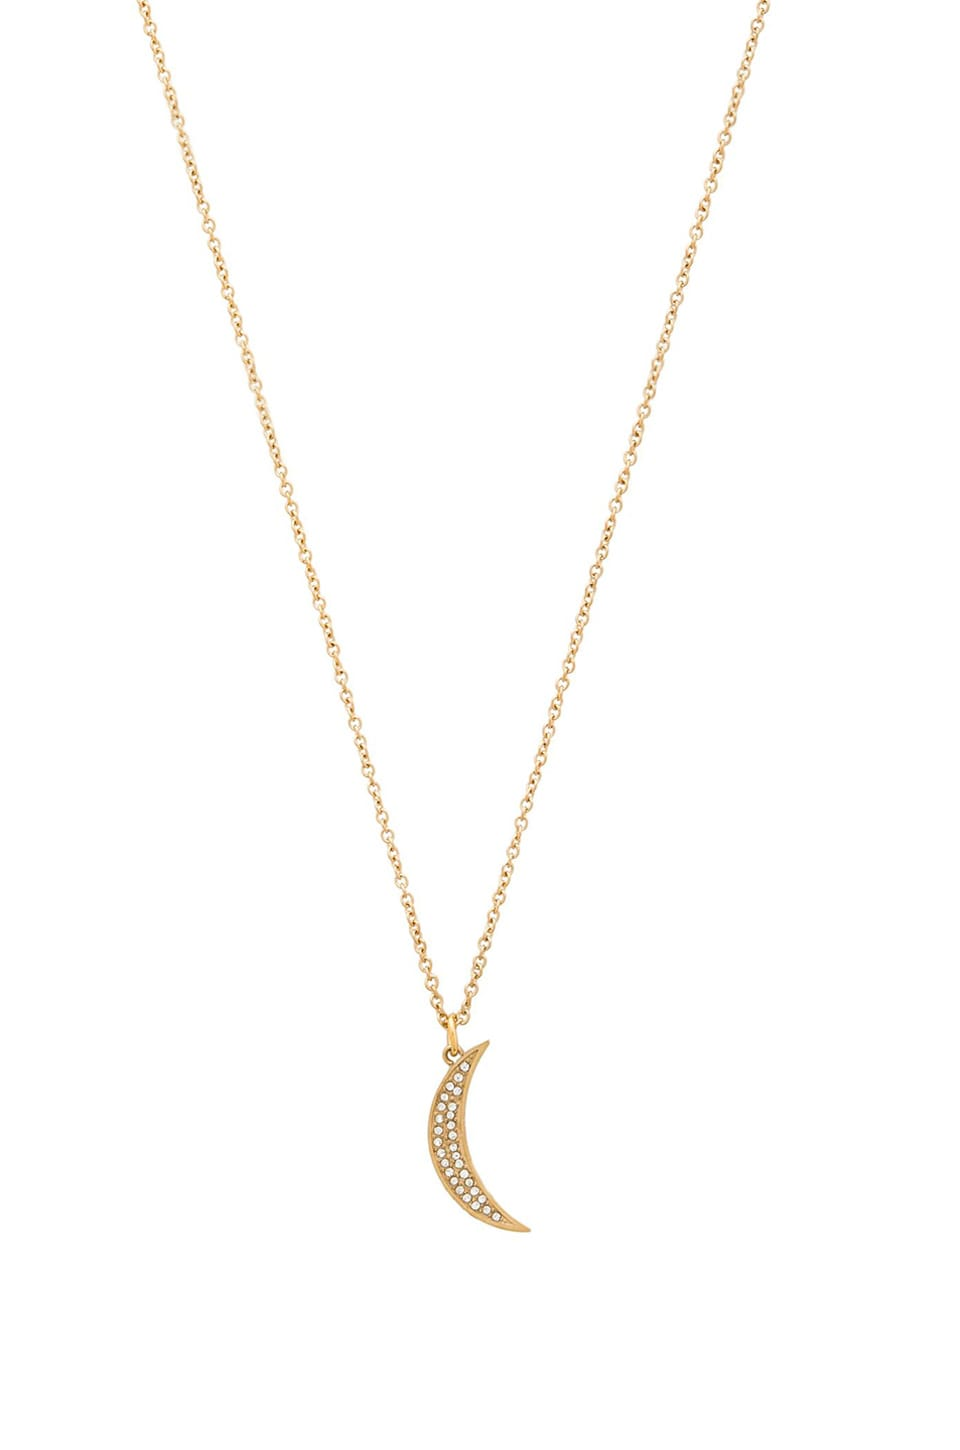 Rebecca Minkoff Crystal Half Moon Necklace in Gold & Crystal